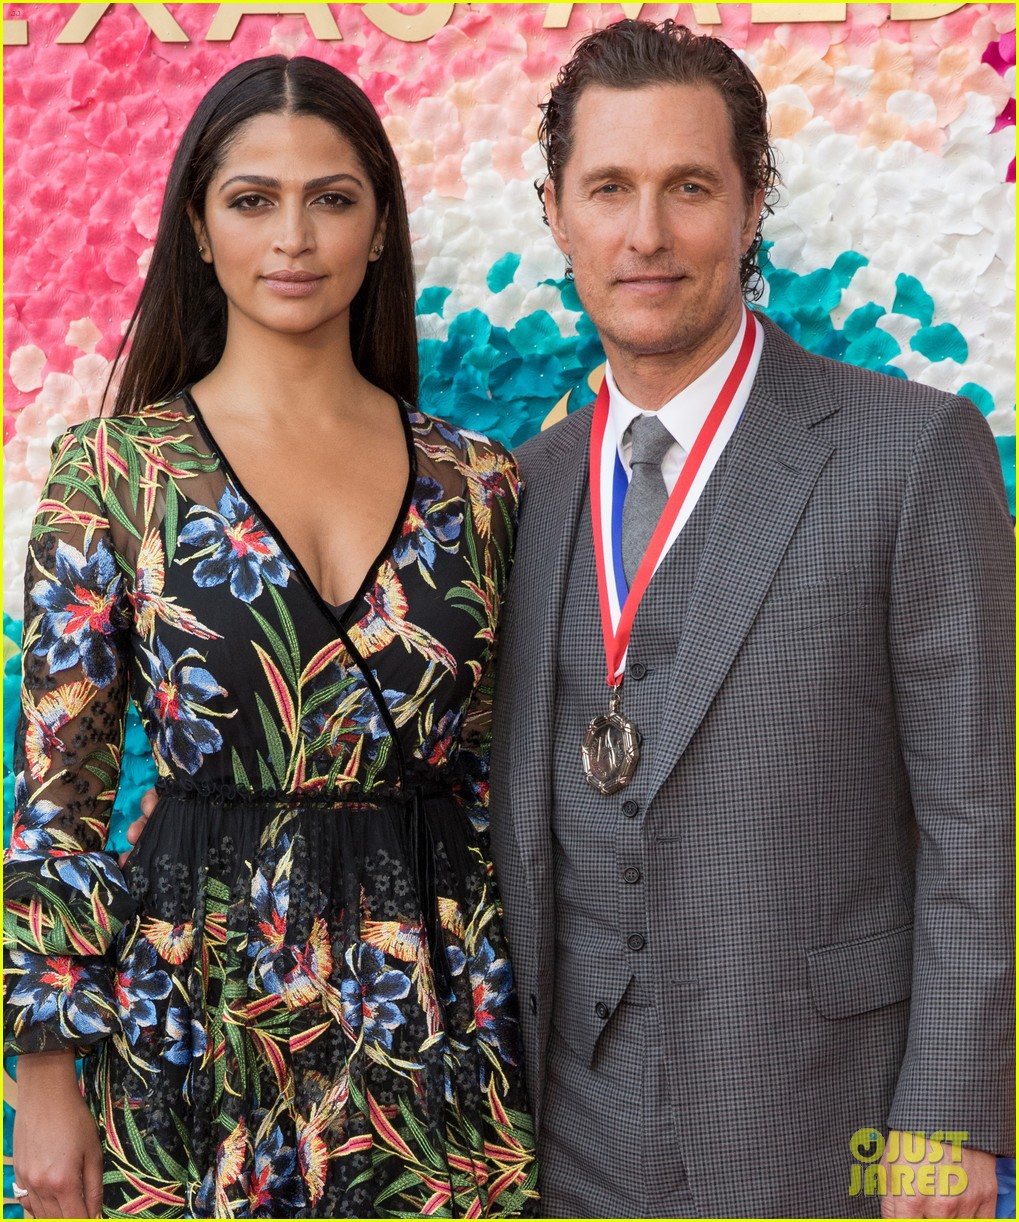 matthew mcconaughey gets honored at texas medal of arts awards with family by his side 014249608